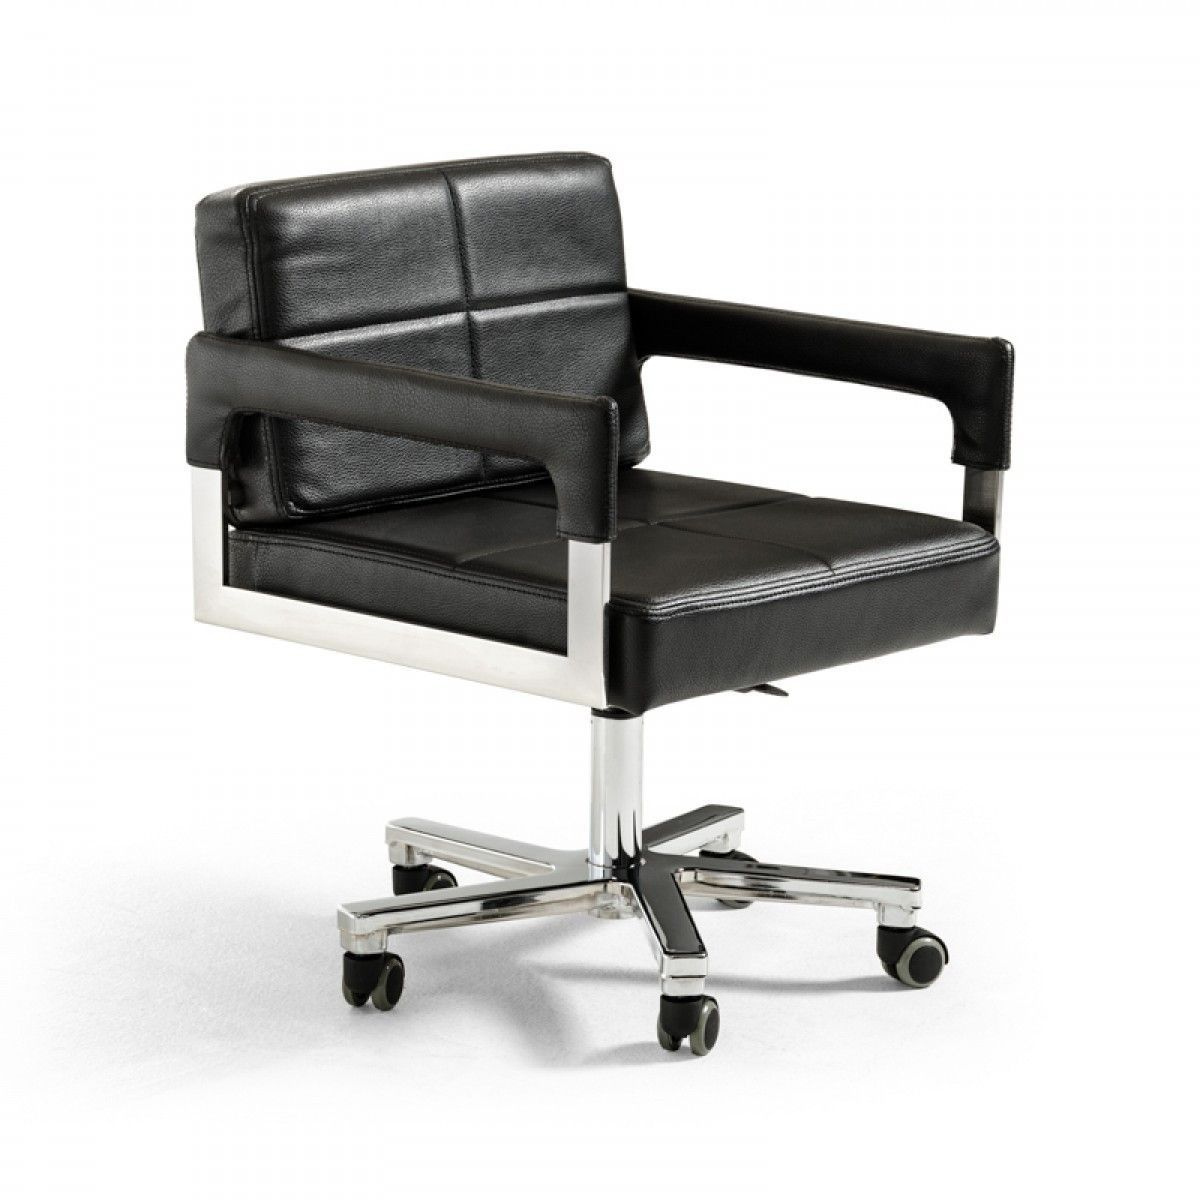 White Modern Office Chair White Rolling To Modrest Craig Modern Black Bonded Leather Office Chair Vgvca508blkproduct 70568features upholstered In Vgvca508